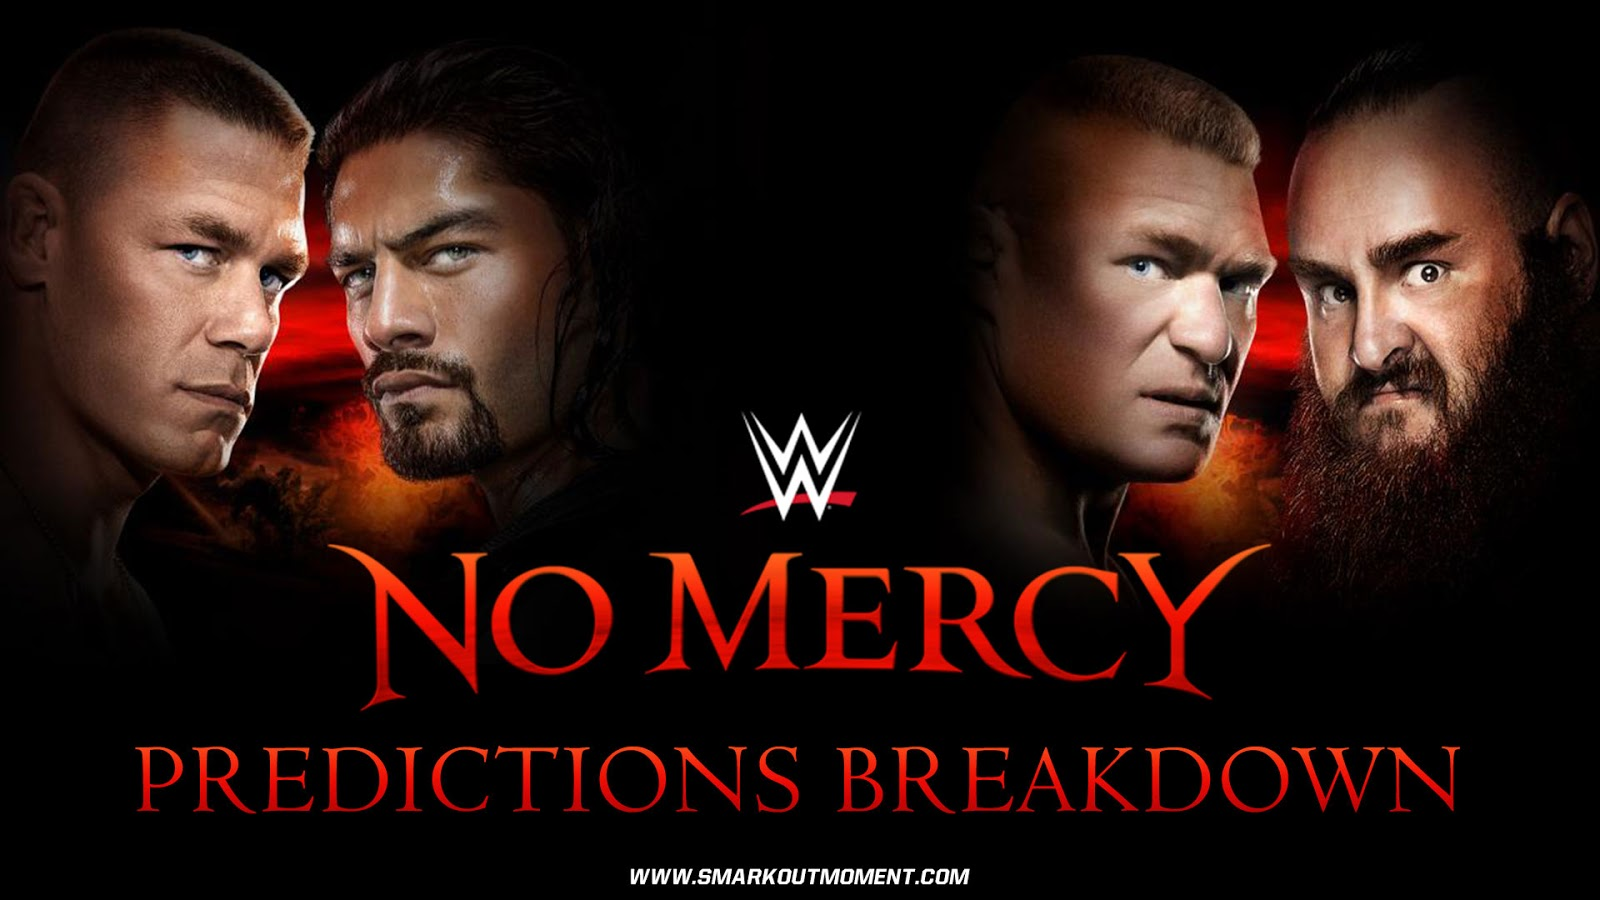 WWE NO MERCY 2017 spoilers podcast